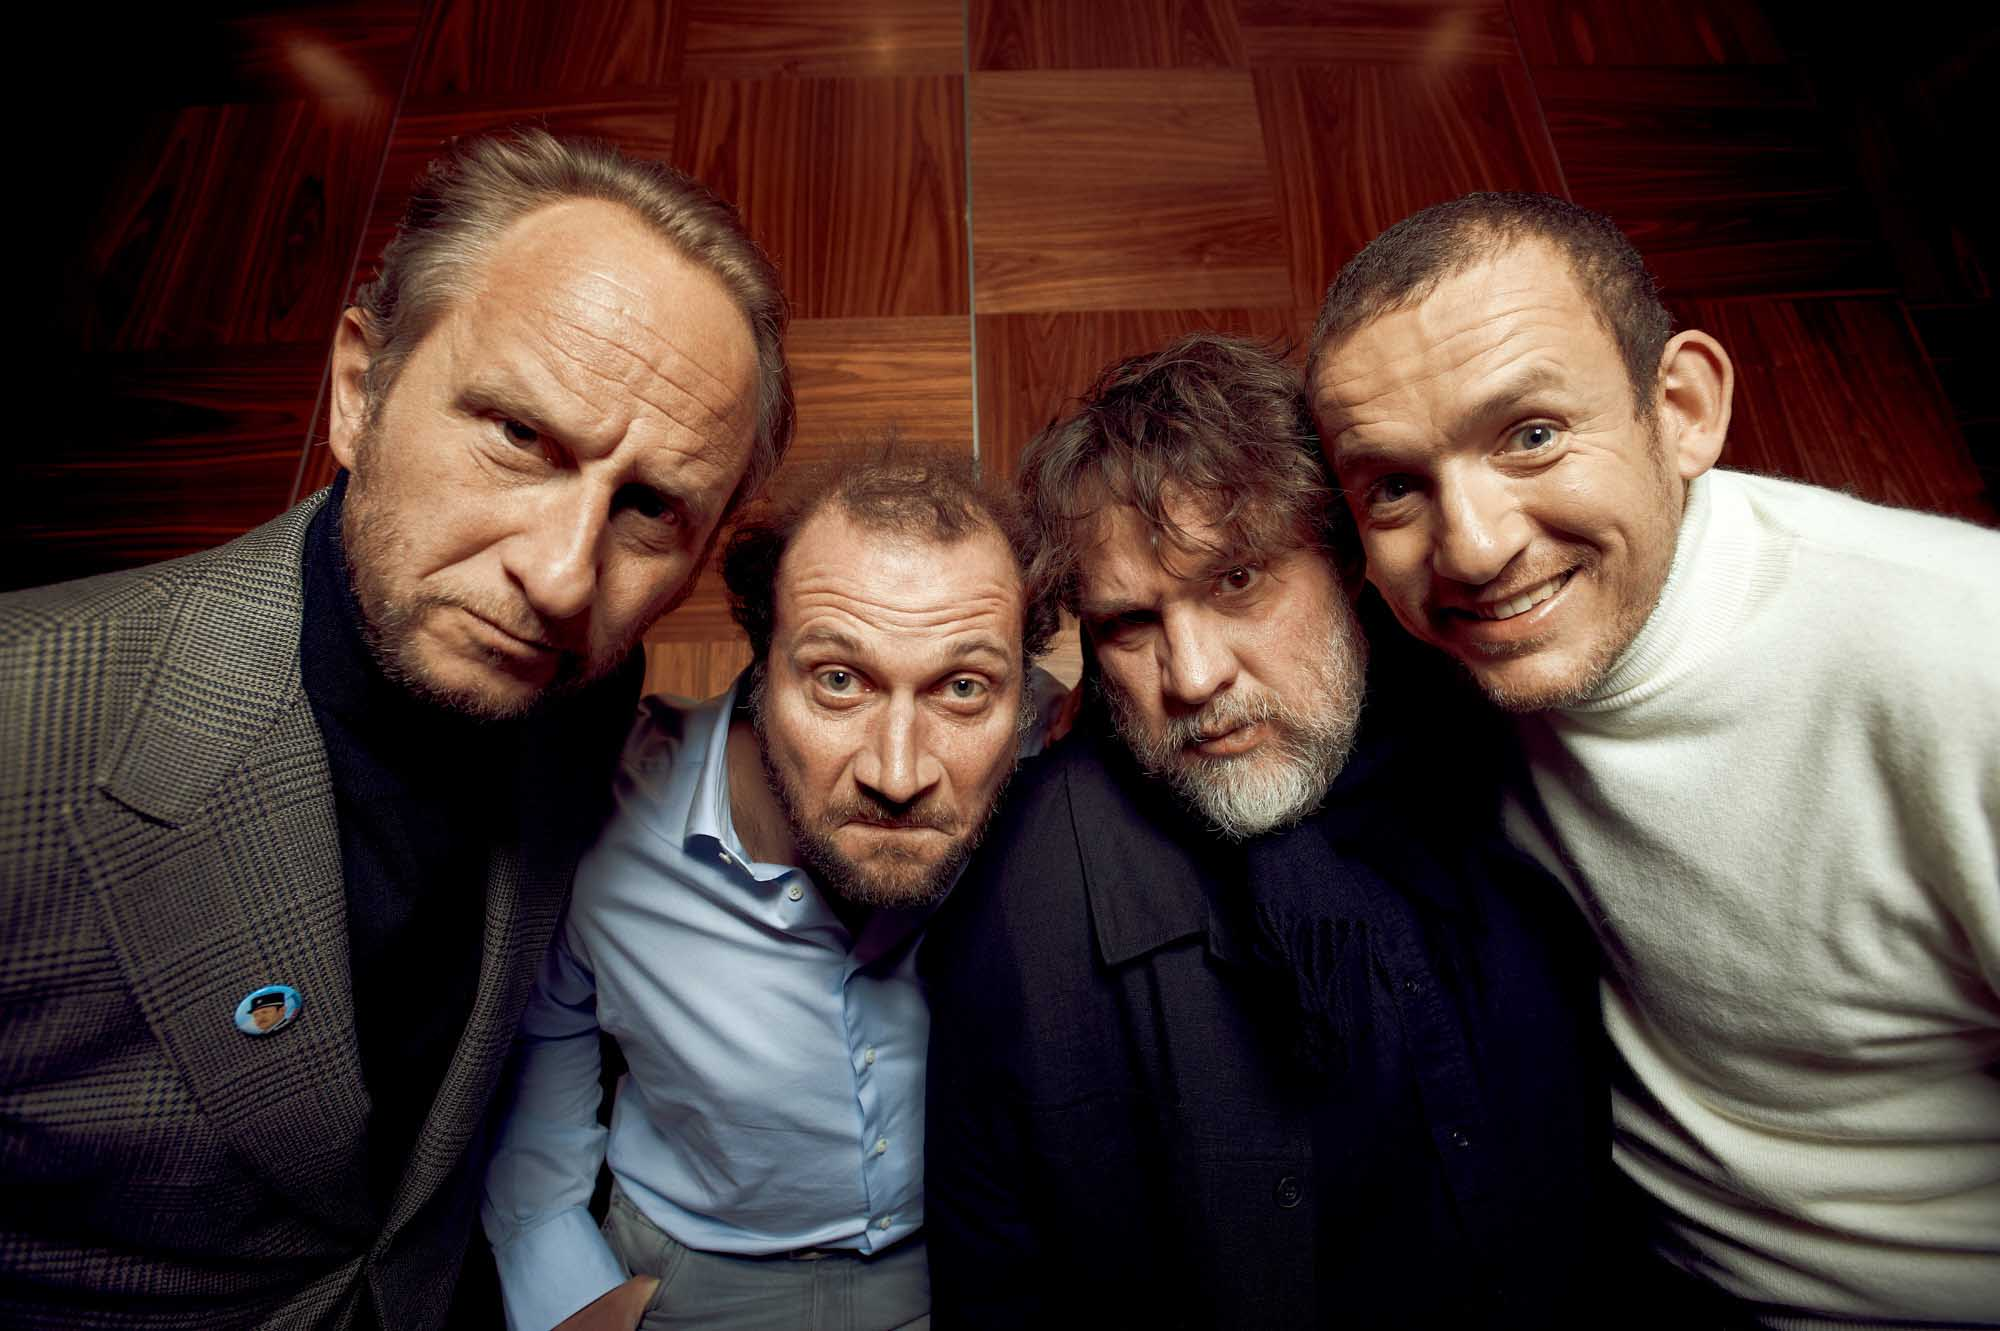 Benoît Poelvoorde, Dany Boon, Bouli Lanners, François Damiens